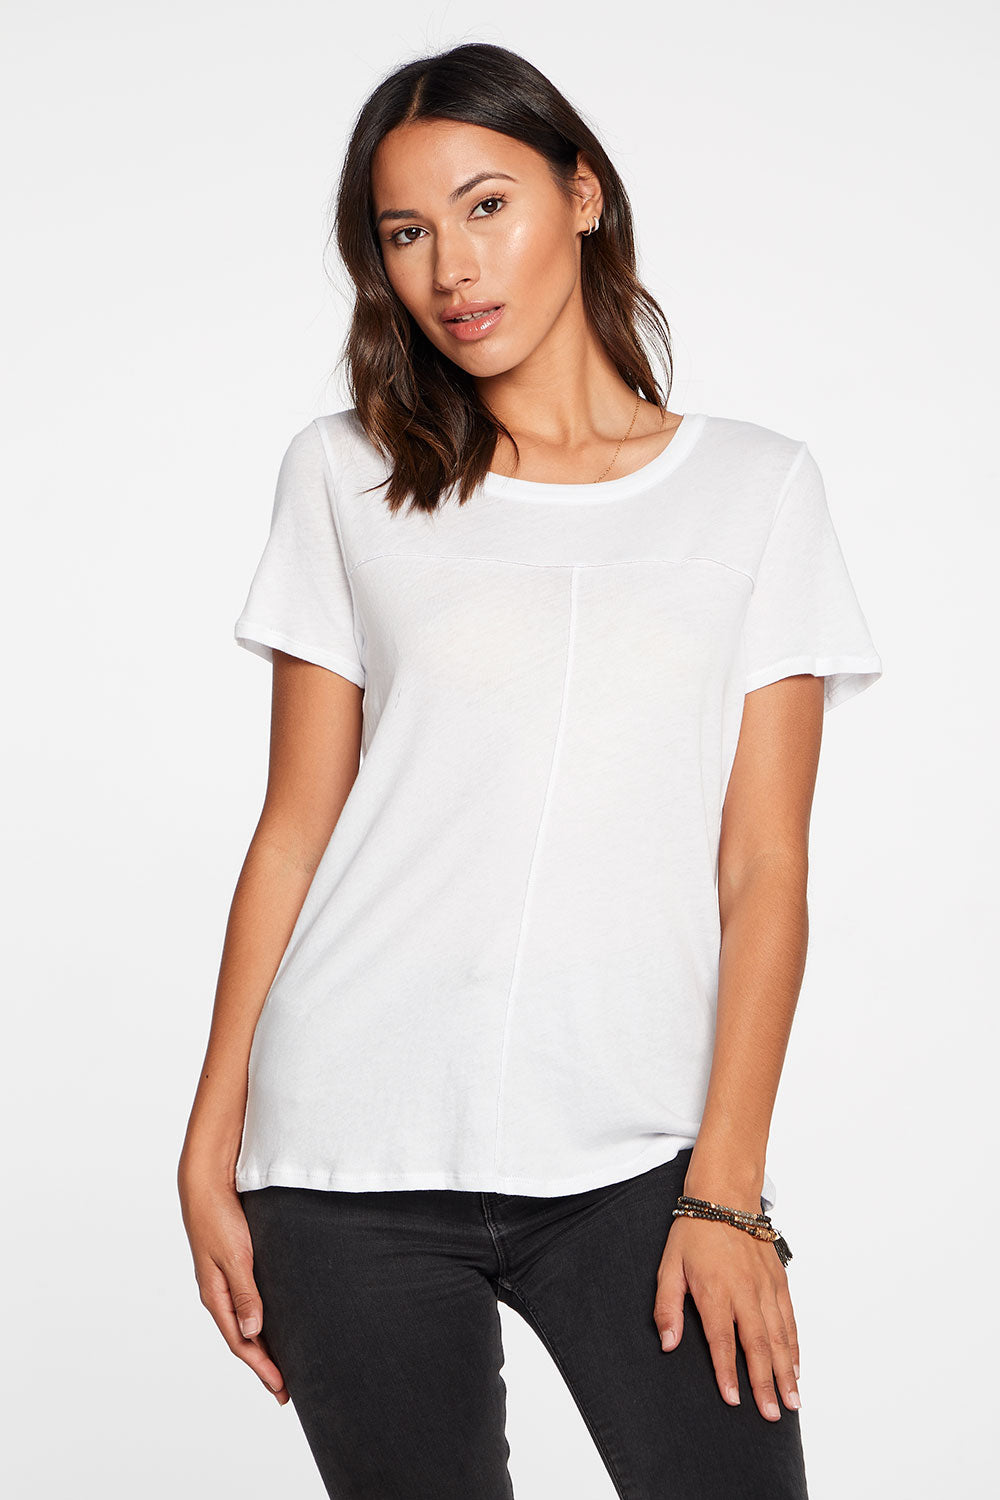 Gauzy Cotton Seamed Short Sleeve Tee in White